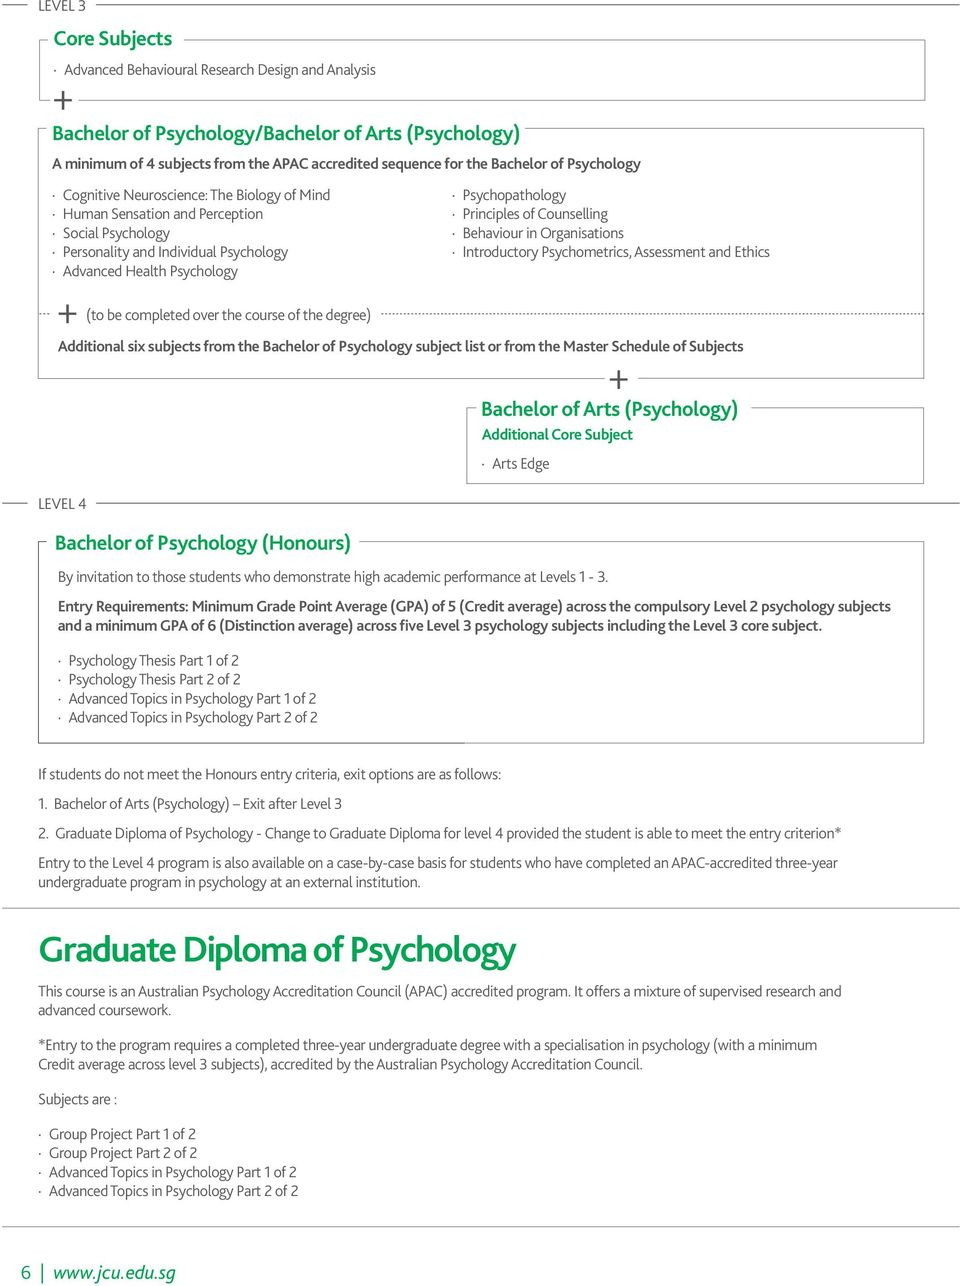 completed over the course of the degree) Psychopathology Principles of Counselling Behaviour in Organisations Introductory Psychometrics, Assessment and Ethics Additional six subjects from the